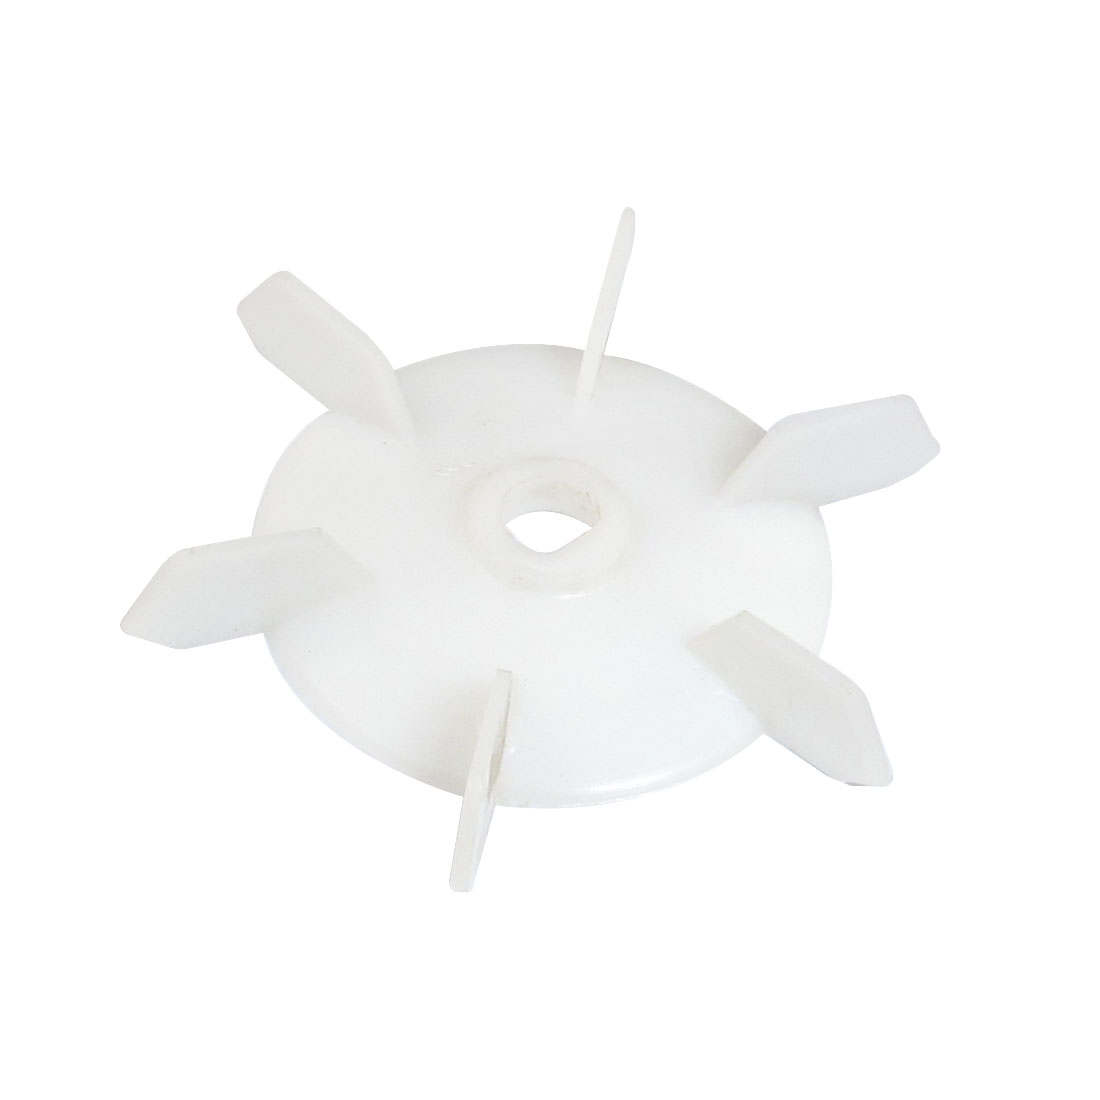 Spare Part 16mm Inner Diameter 6 Vanes Impeller Plastic Motor Fan Wheel